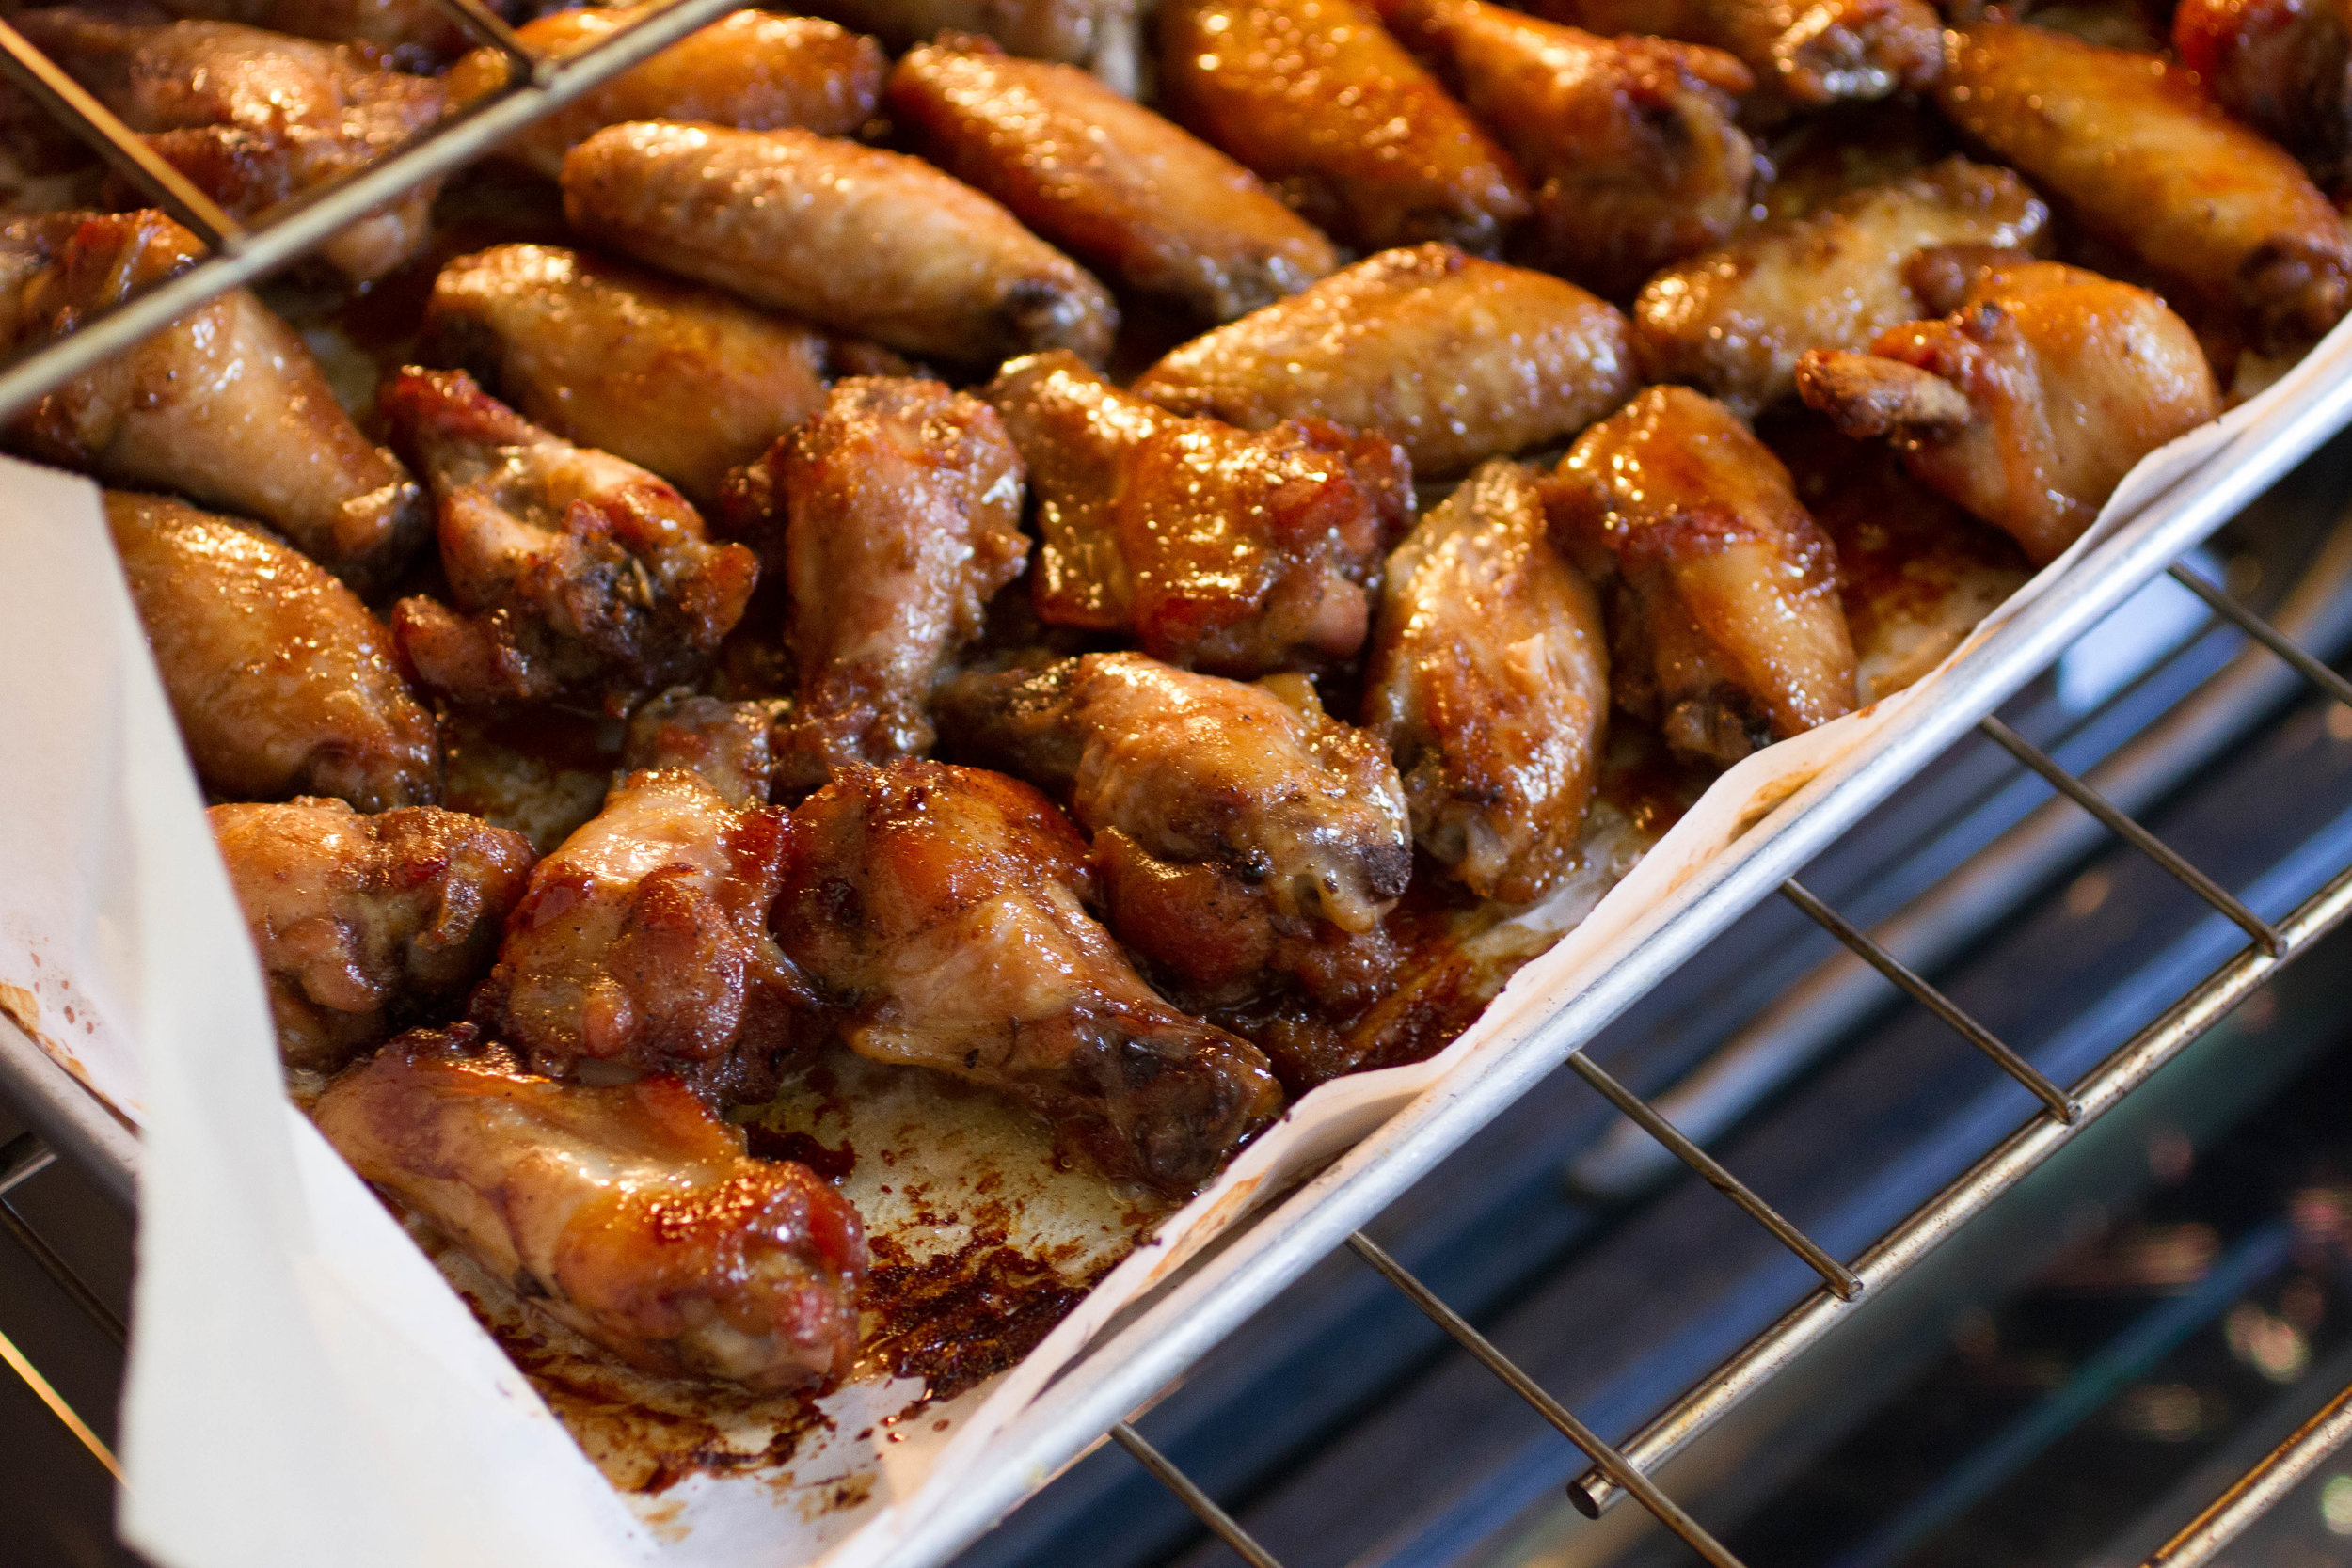 Vietnamese Five Spice Baked Chicken Wings (Canh Ga Nuong)